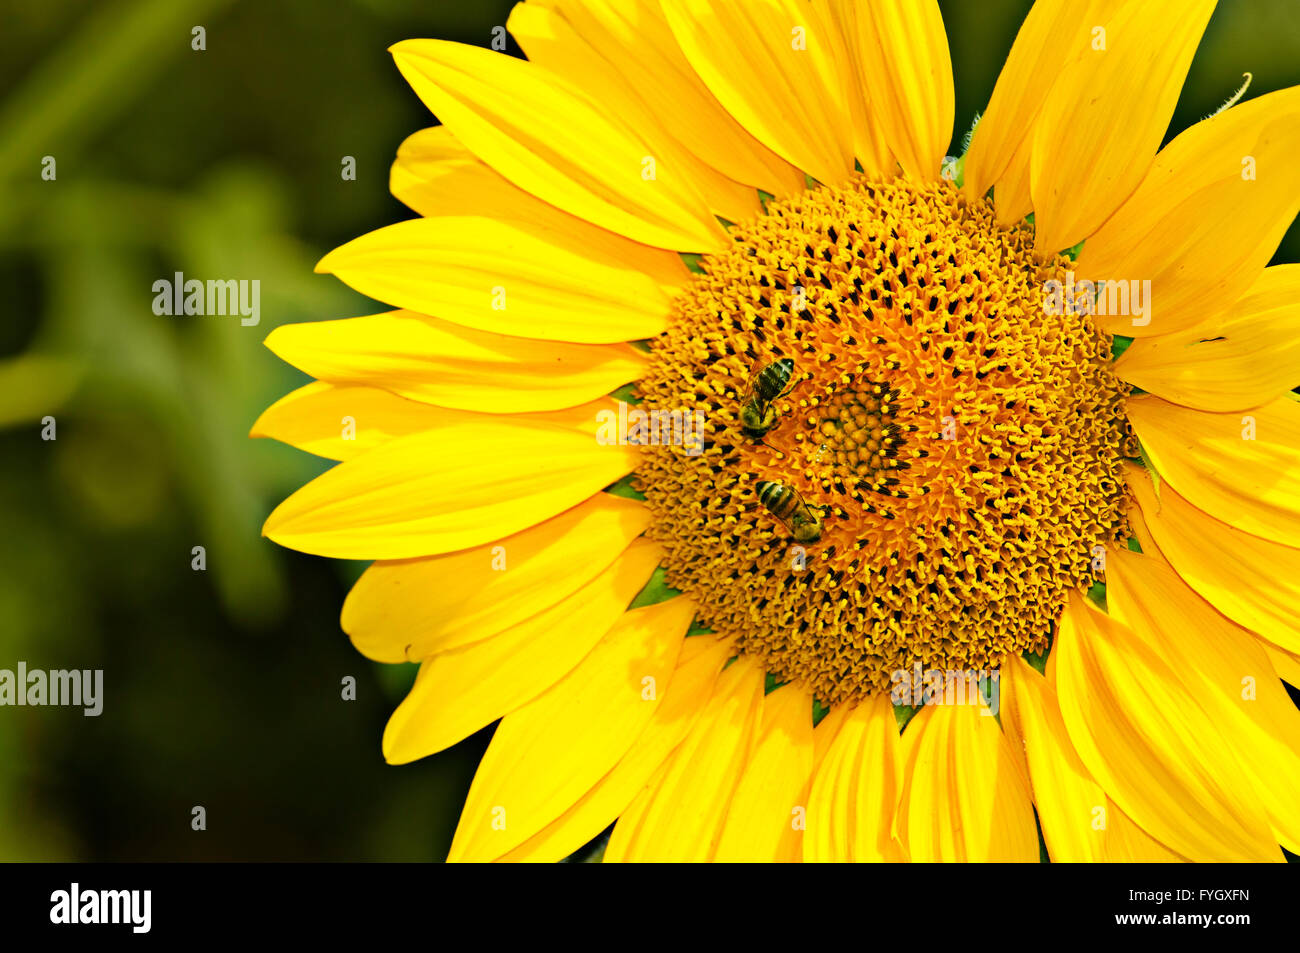 Yellow sunflower is pollinated by bees - Stock Image